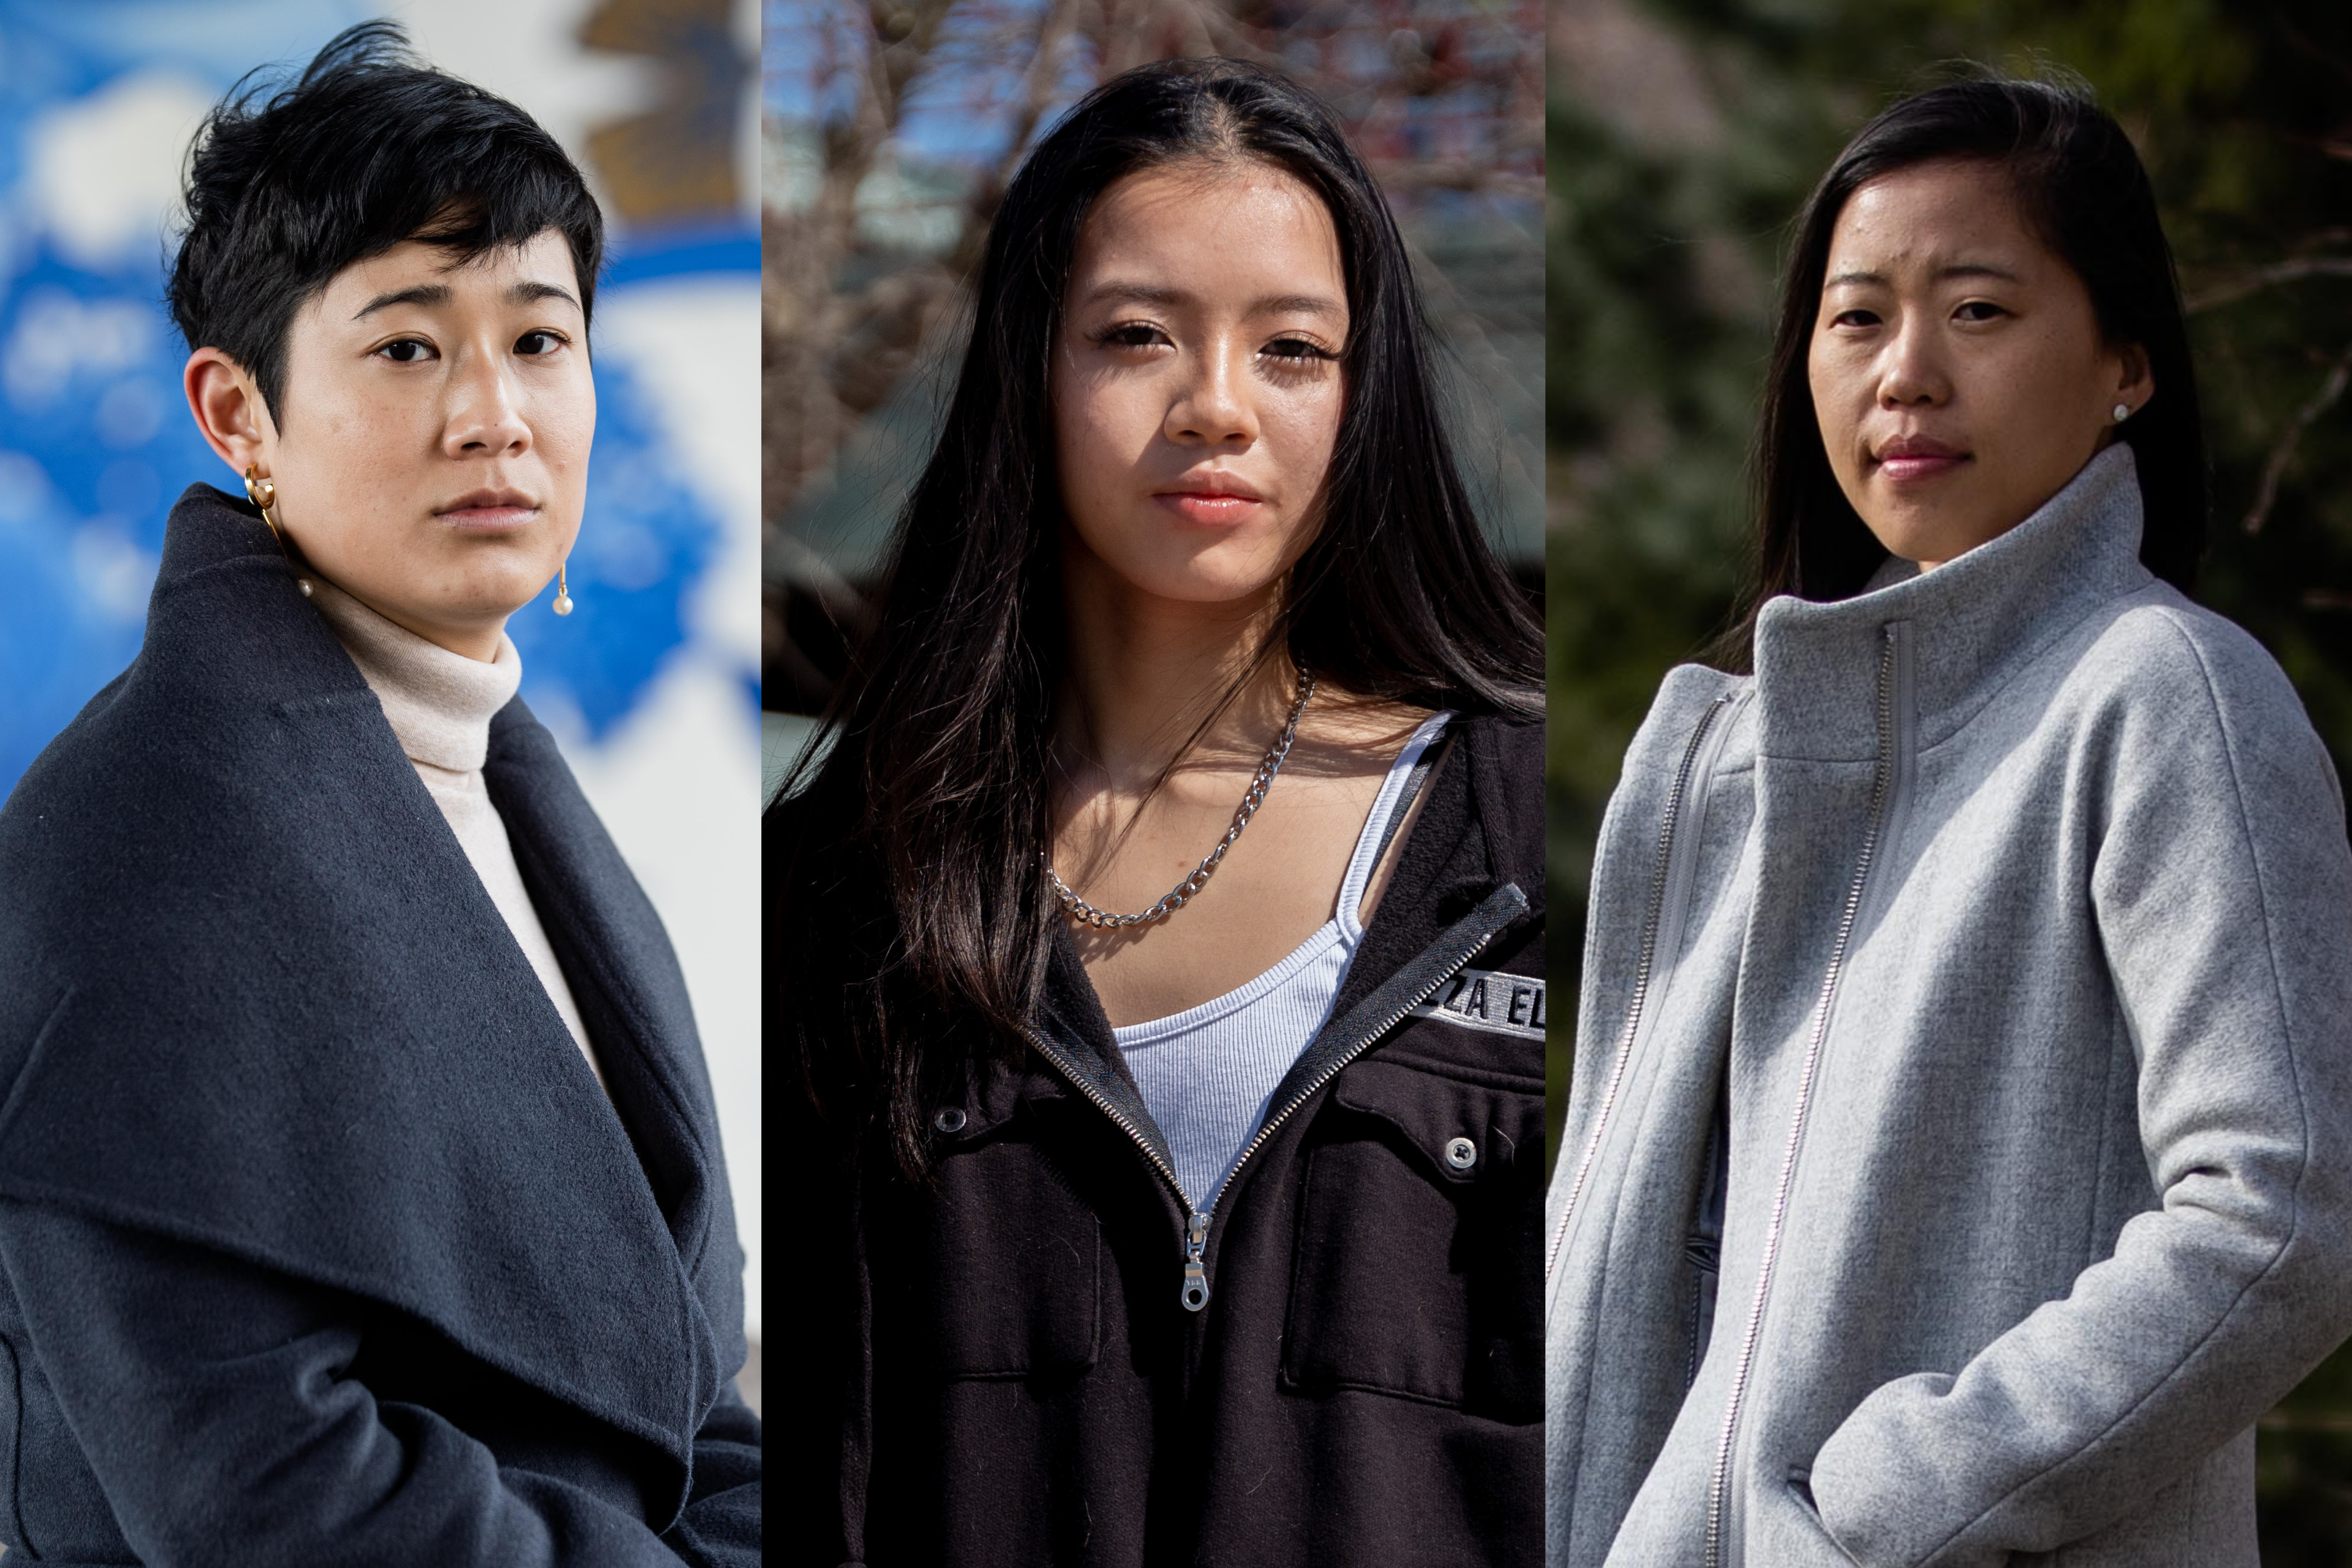 Catherine Shieh (from left), Milana Dam and Jaye Hobart: The pandemic and anti-Asian violence have put added stresses on Asian Americans.